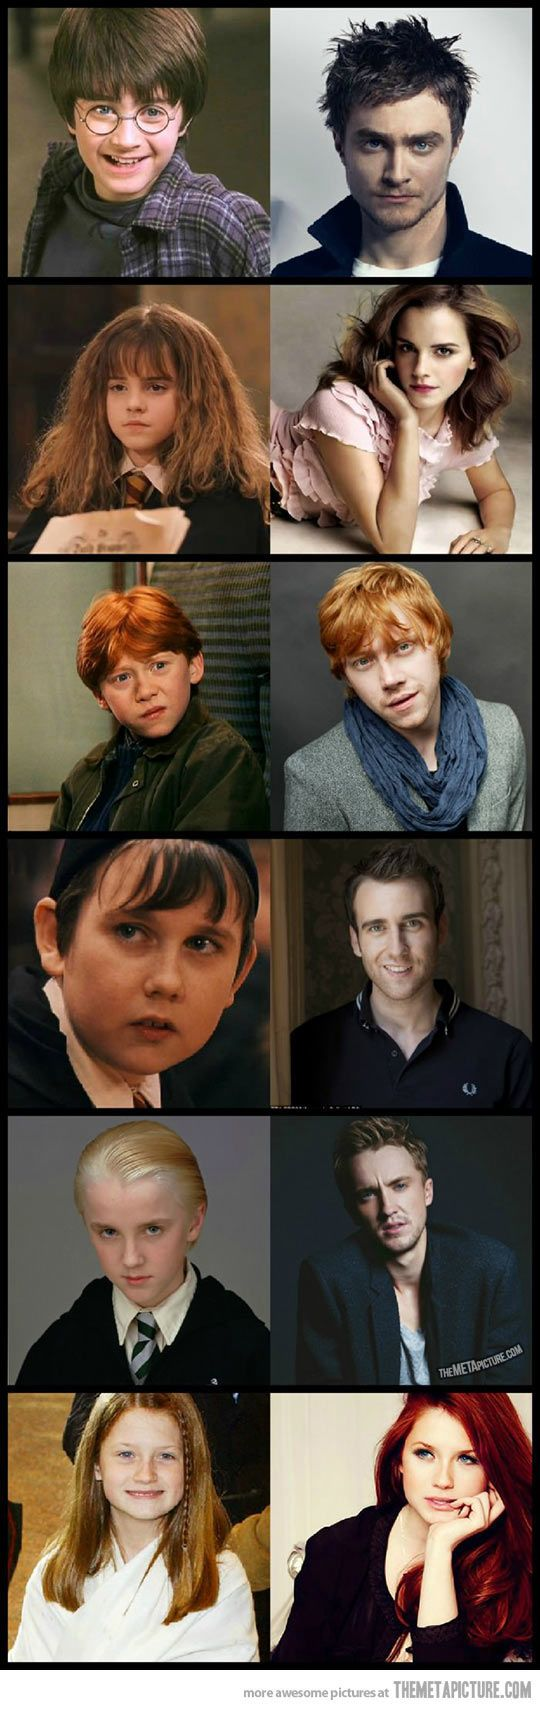 Harry Potter then and now. There's magic involved here…I love harry potter